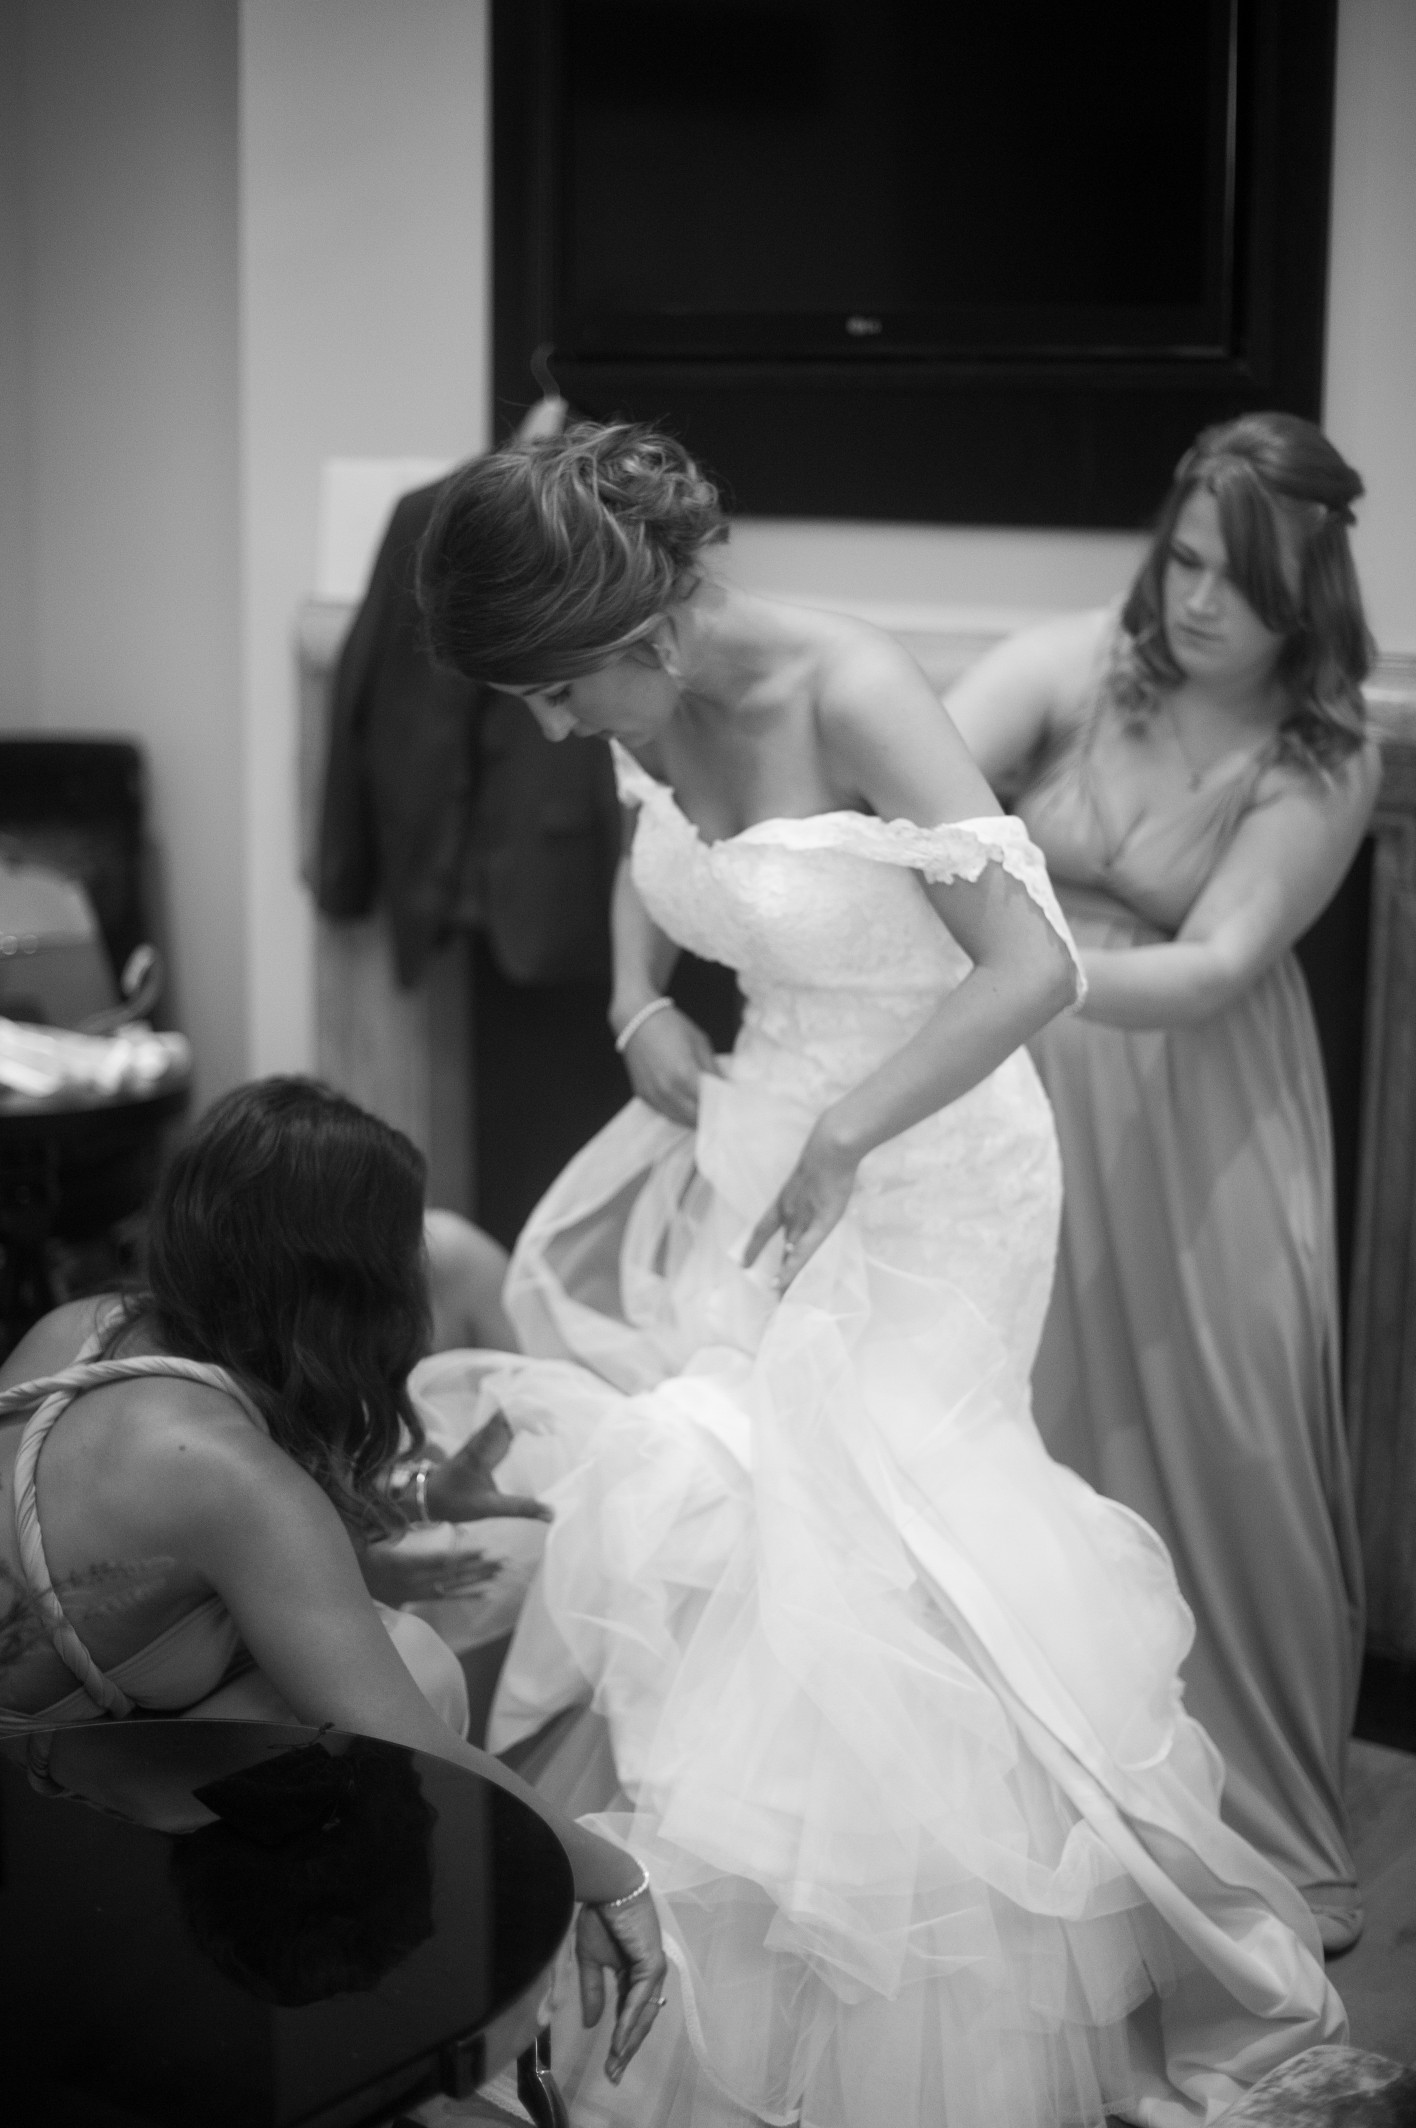 Wedding photography at Tudor Barn in Eltham - bridal preparations